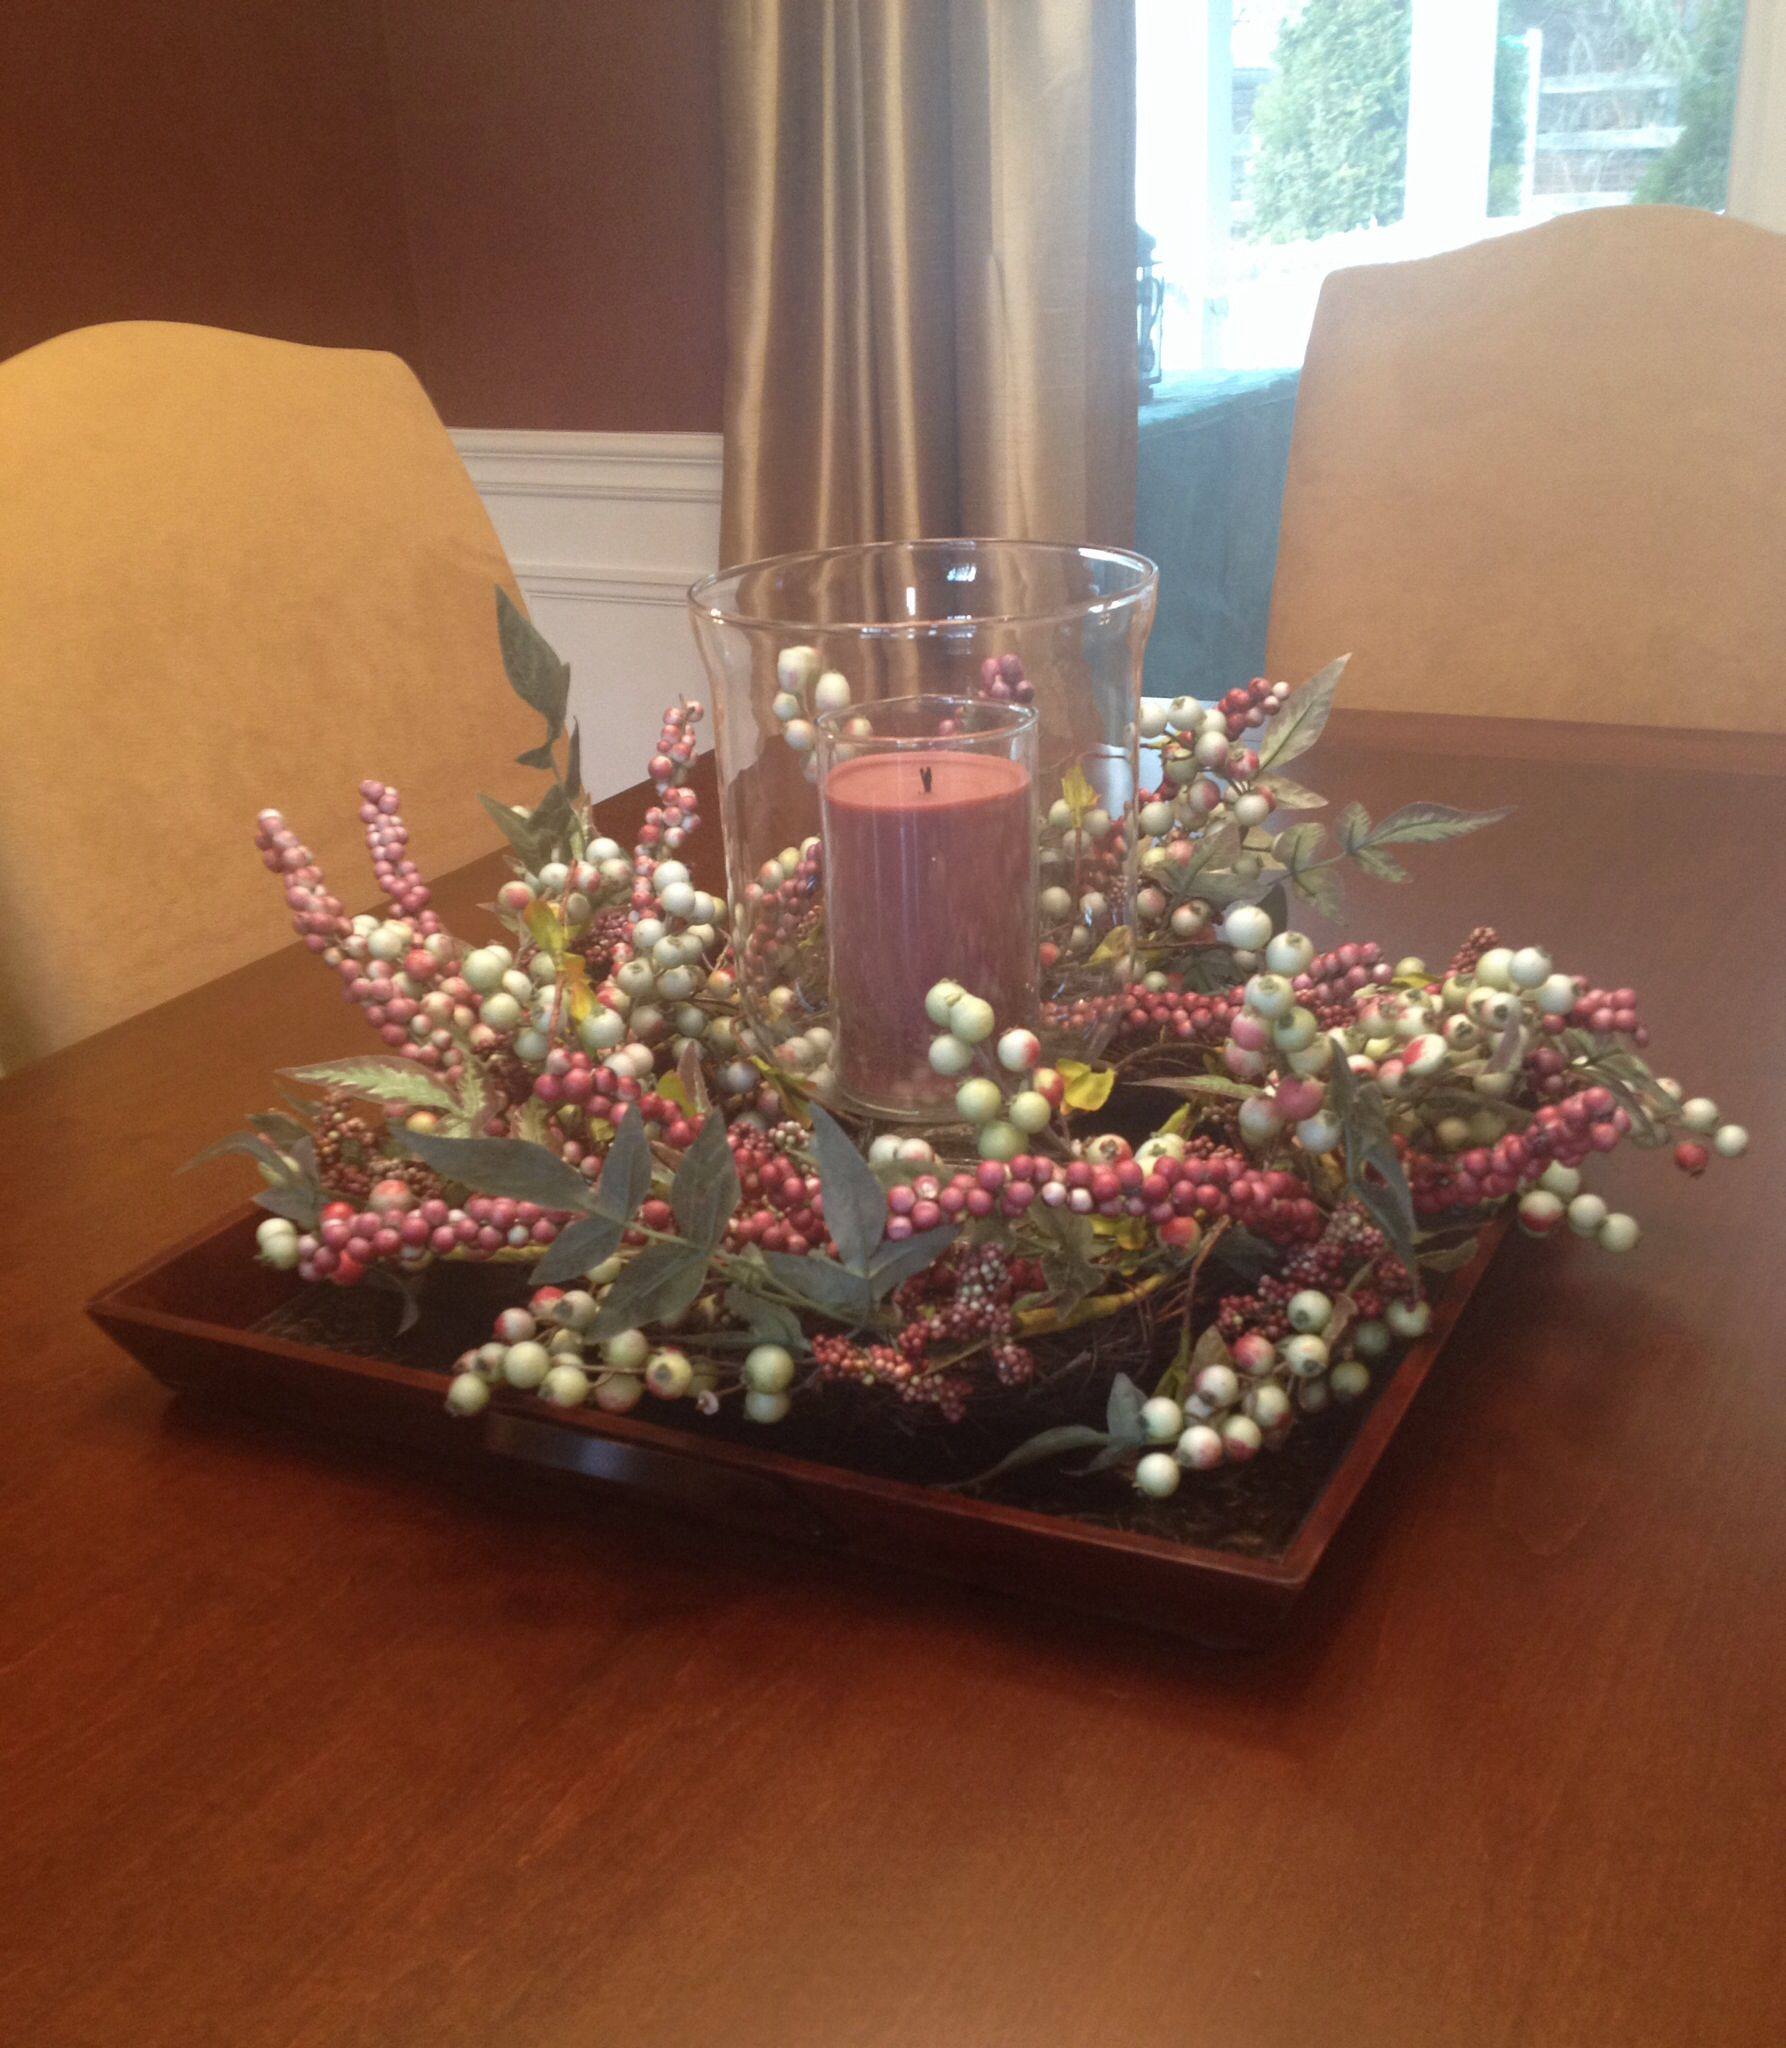 Dining room with flowers and candle on square plate